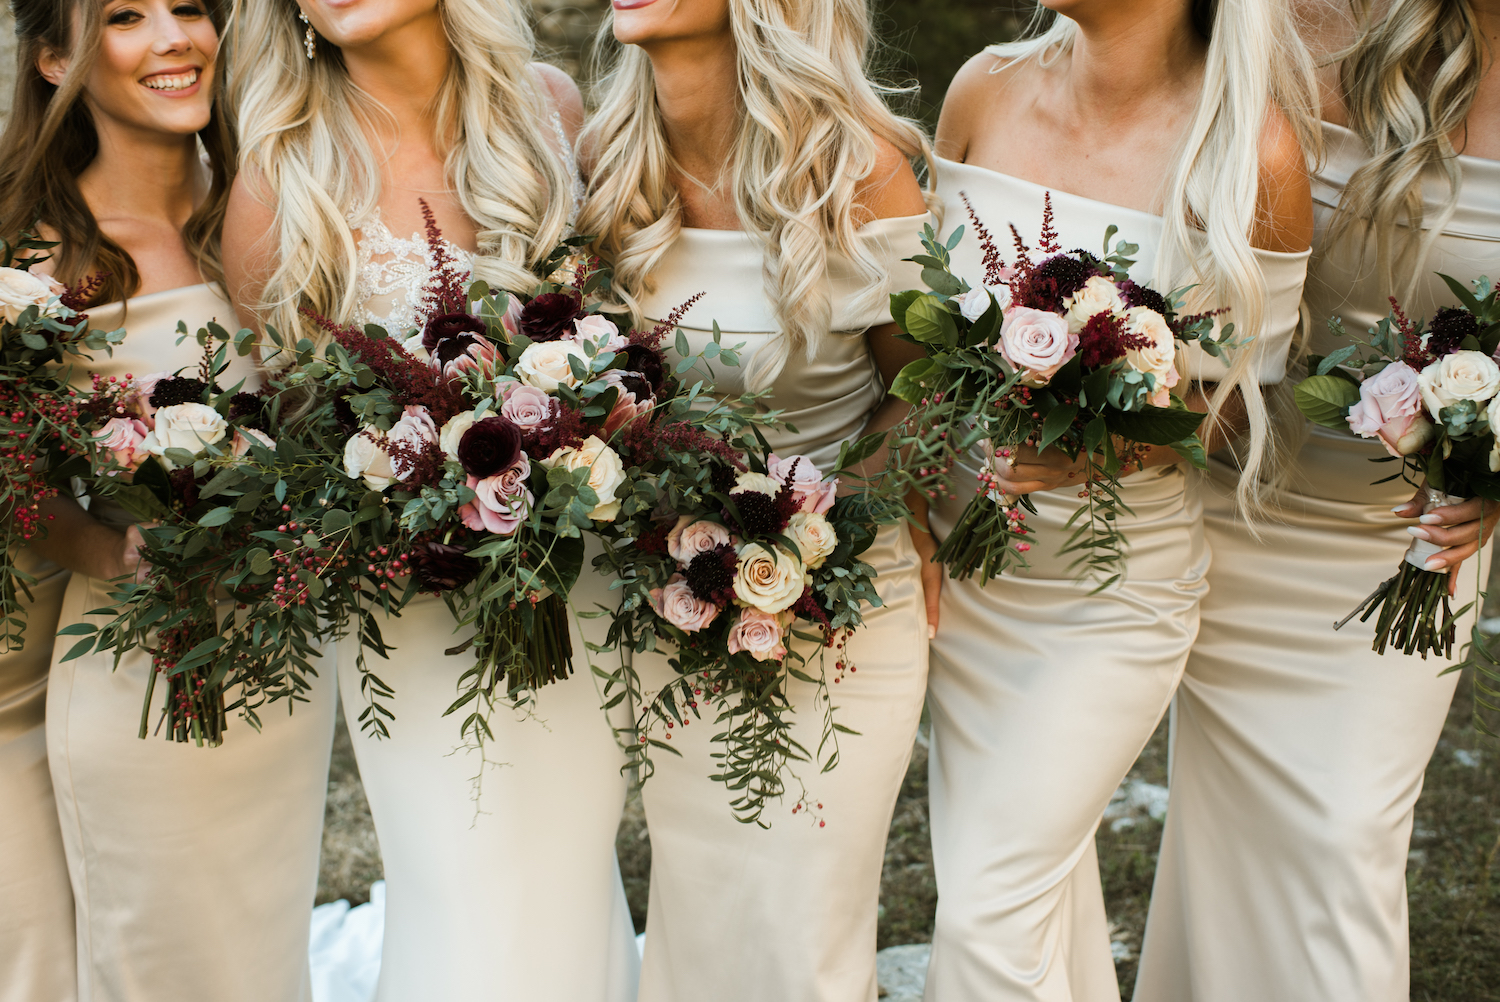 Blush and Burgundy Wedding Bouquets: Upscale Marble Graystone Quarry Wedding featured on Nashville Bride Guide